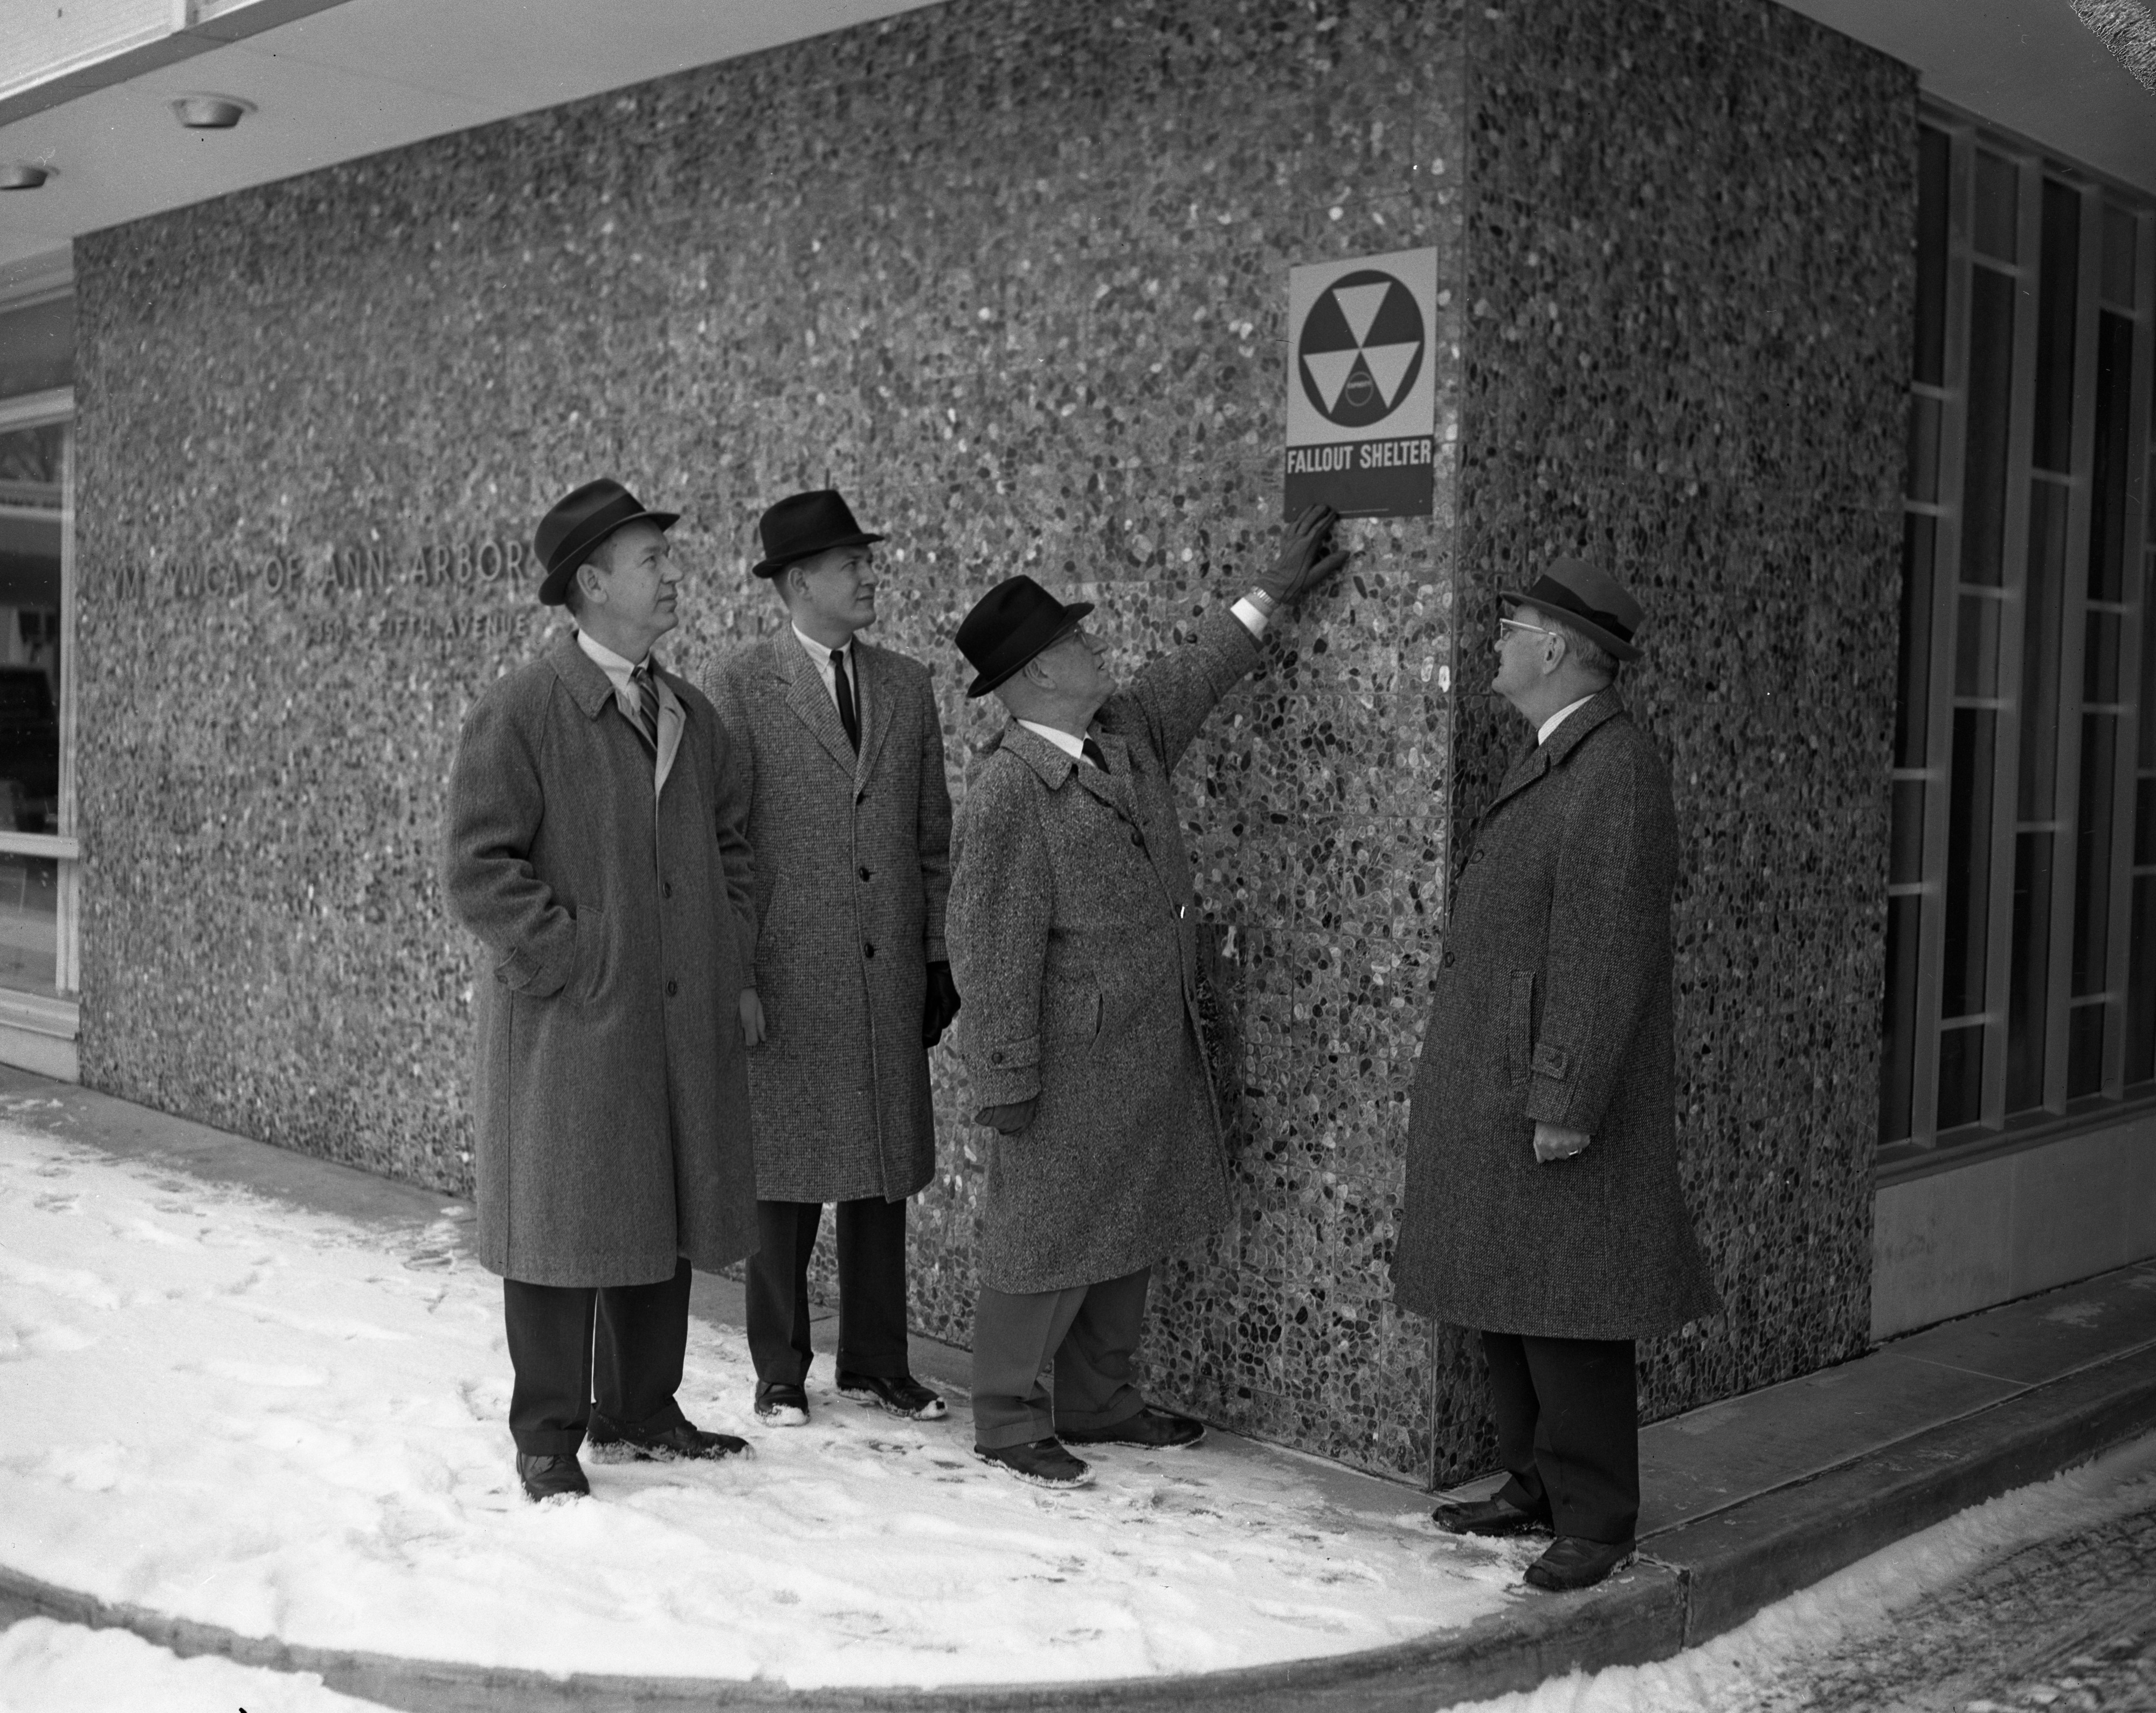 City leaders place the first fallout shelter sign on the YM-YWCA building downtown, February 1963 image